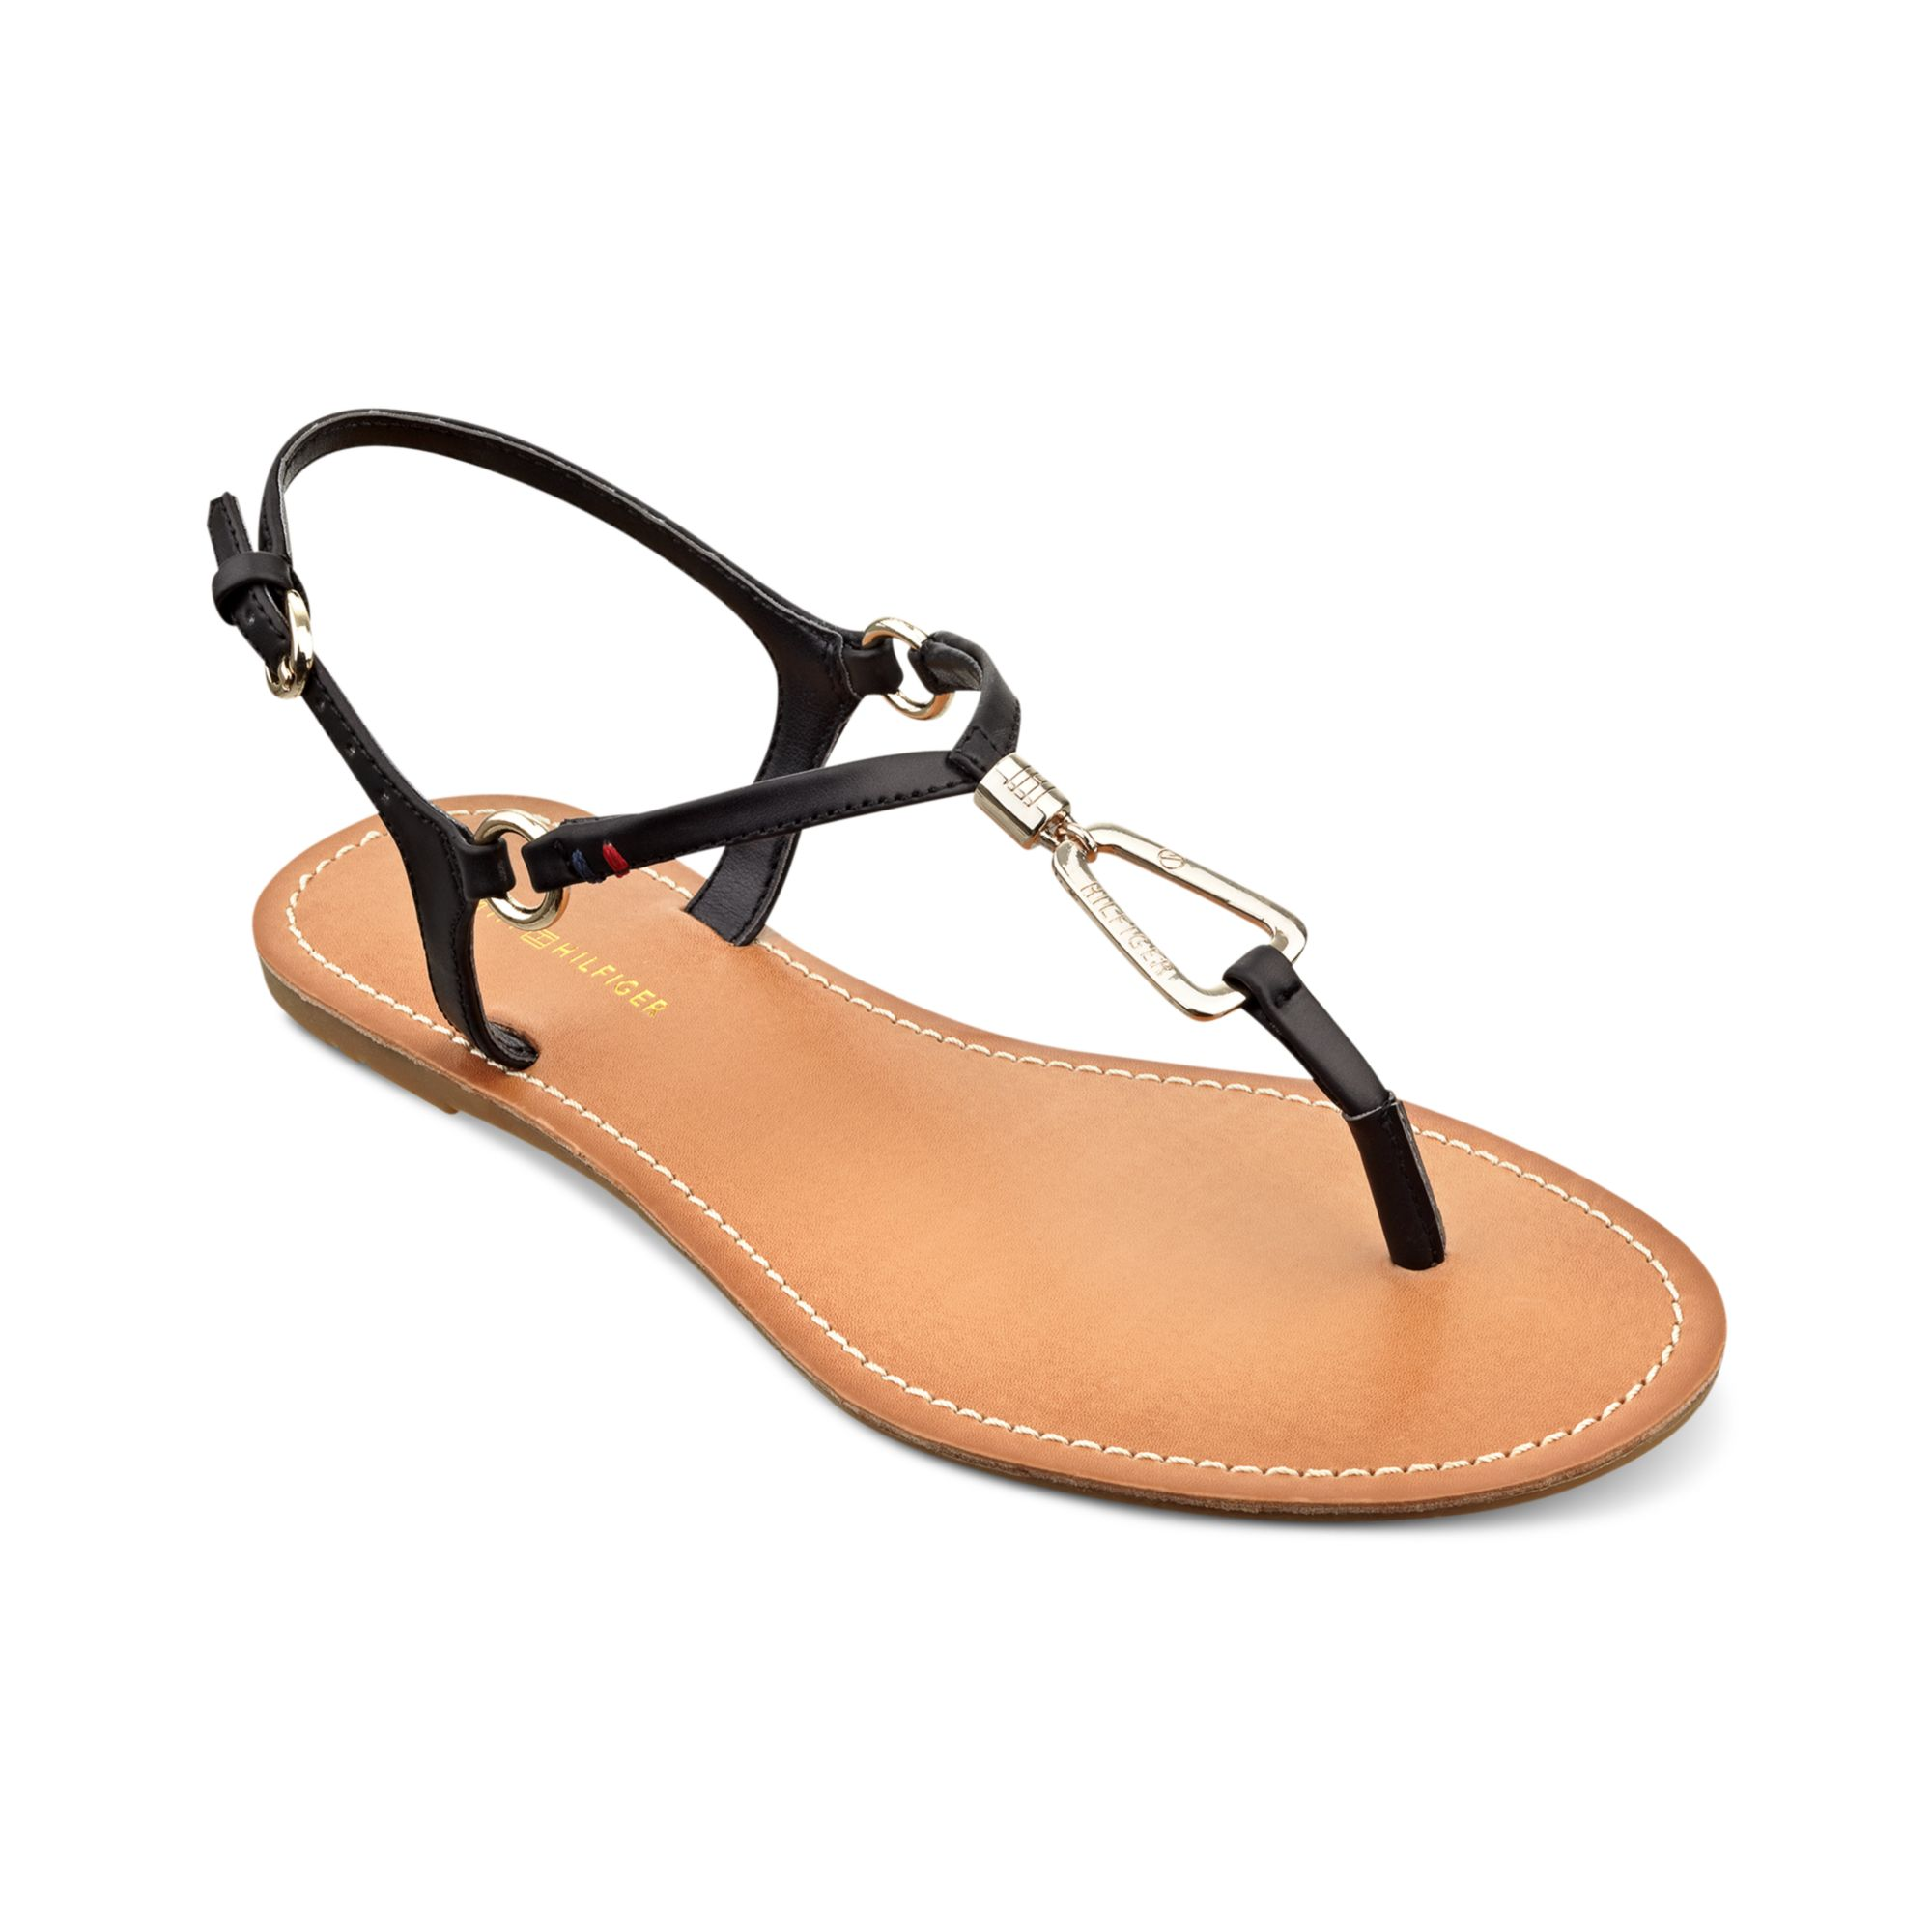 Thong Lyst Tommy Black Sandals Leuca Hilfiger in mnwNv0O8